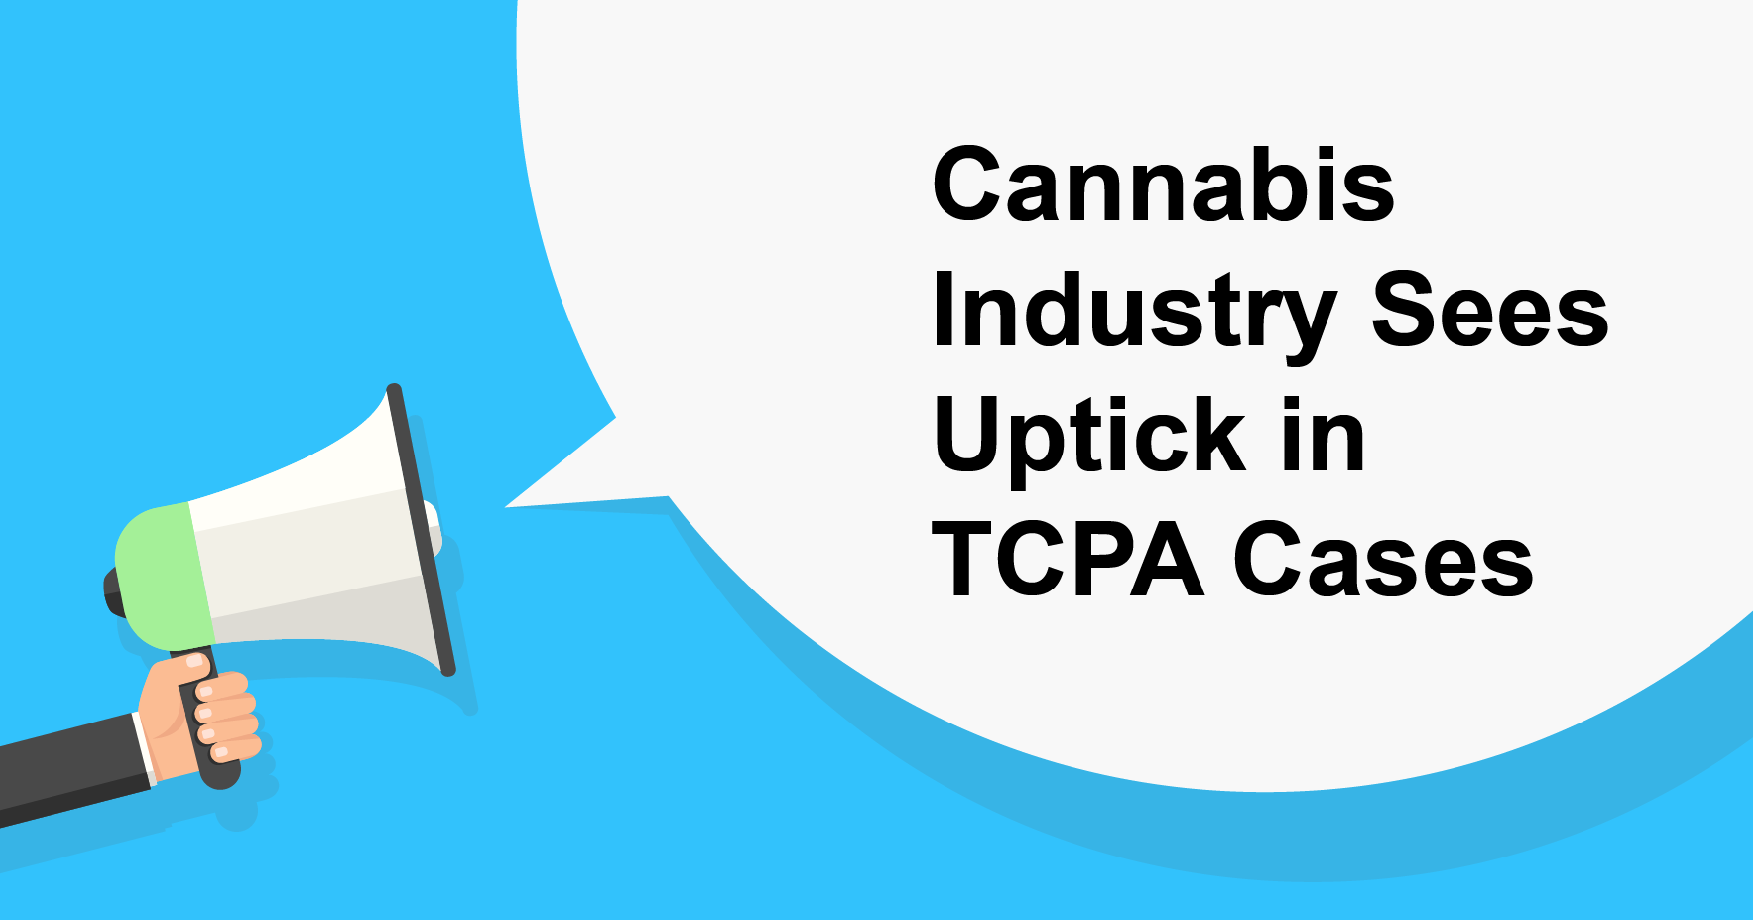 Cannabis Industry Sees Uptick in TCPA Cases